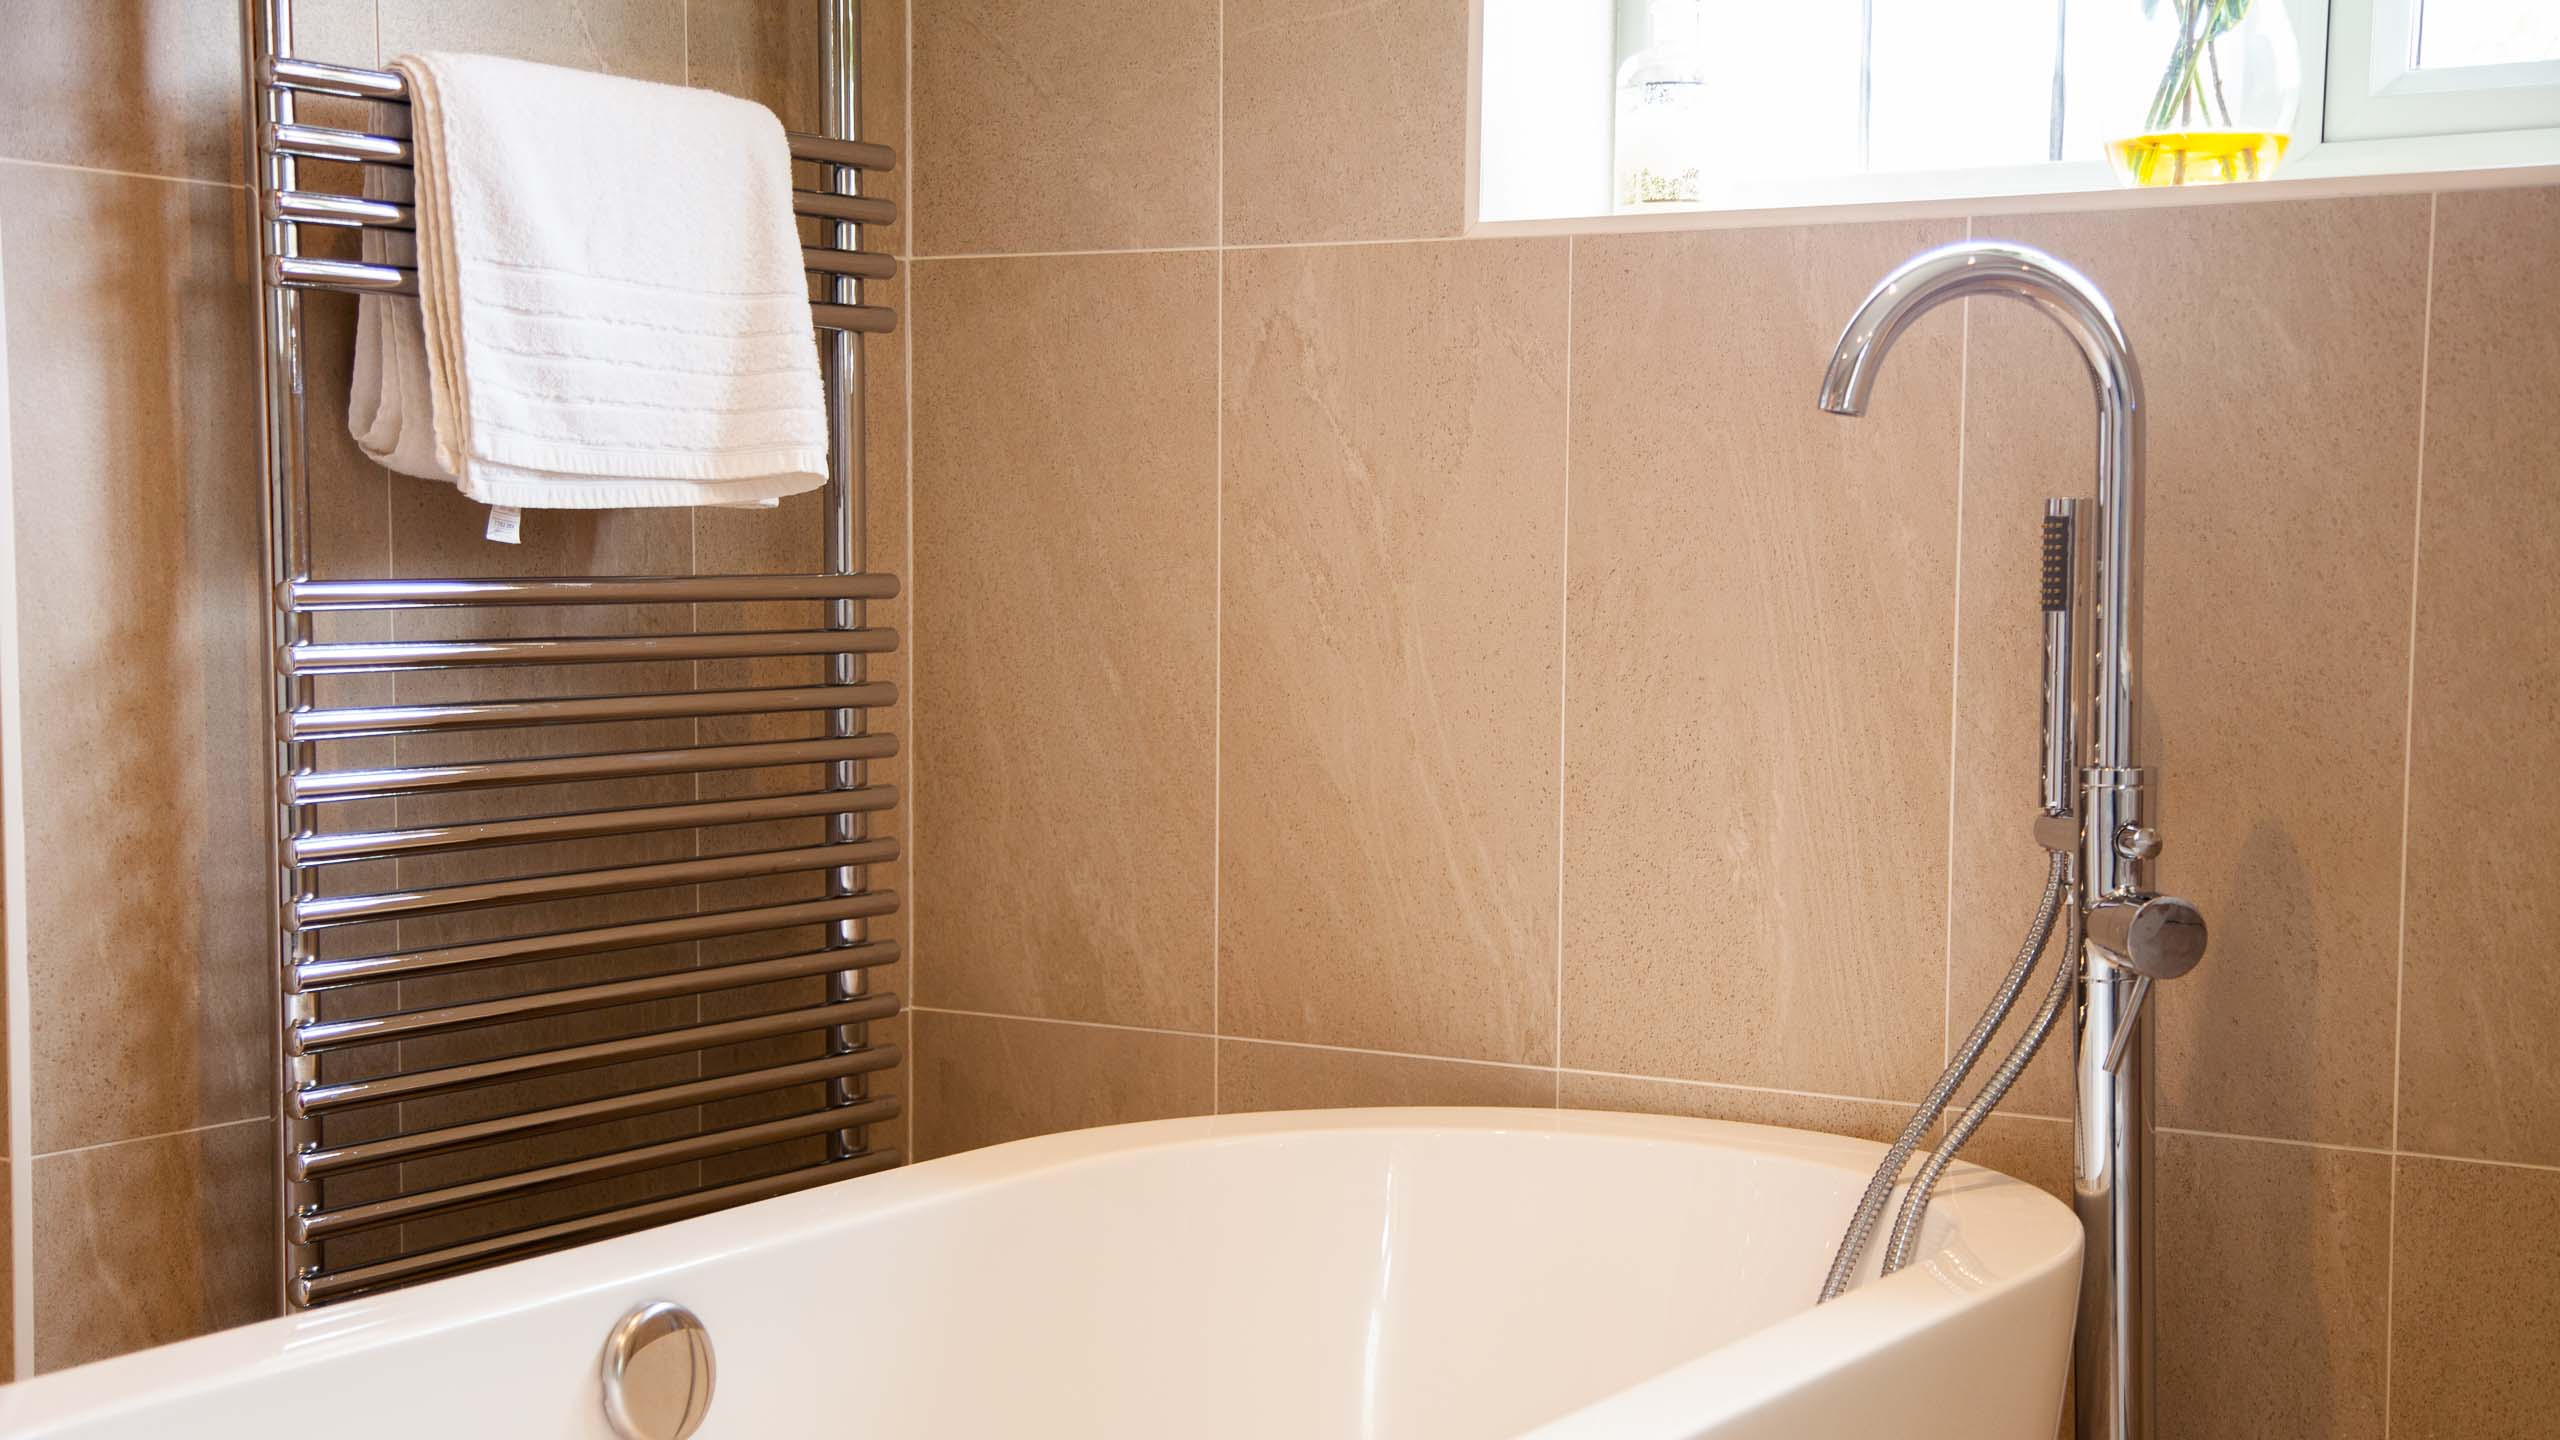 modern bath and radiator - bathroom installation by RJ Steele builders in Sussex